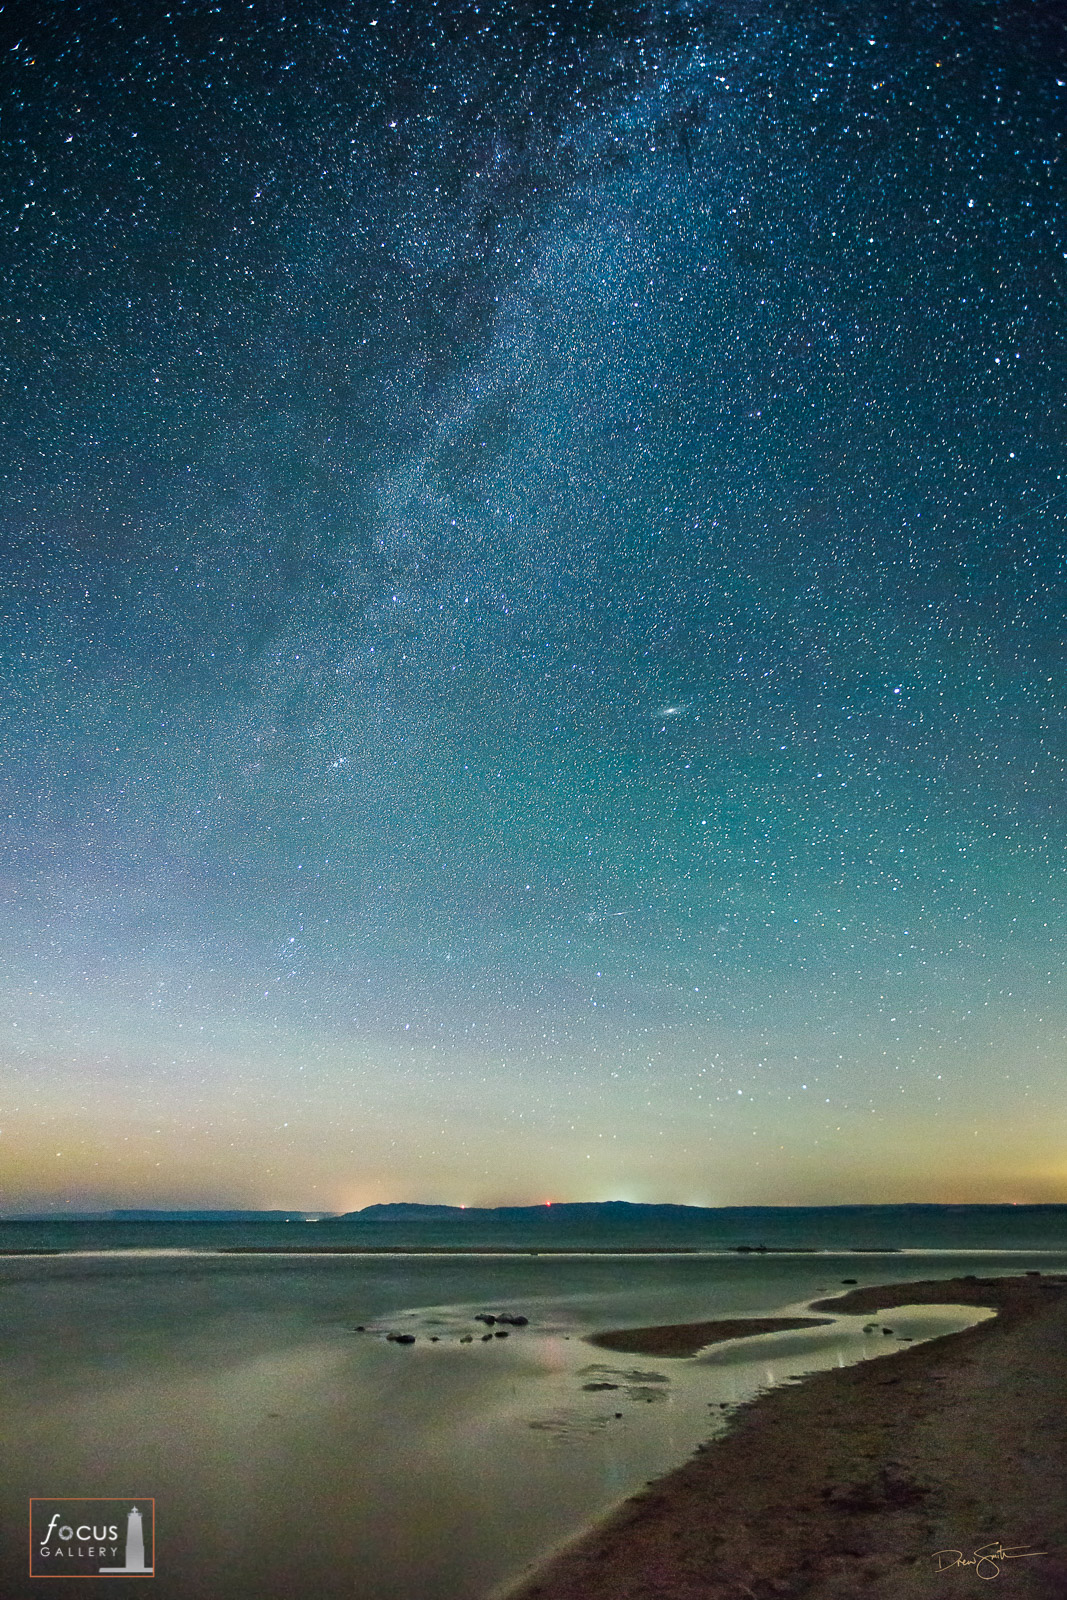 Starry skies and the Milky Way over Lake Michigan and the Platte River at Platte Point, Sleeping Bear Dunes, Michigan.